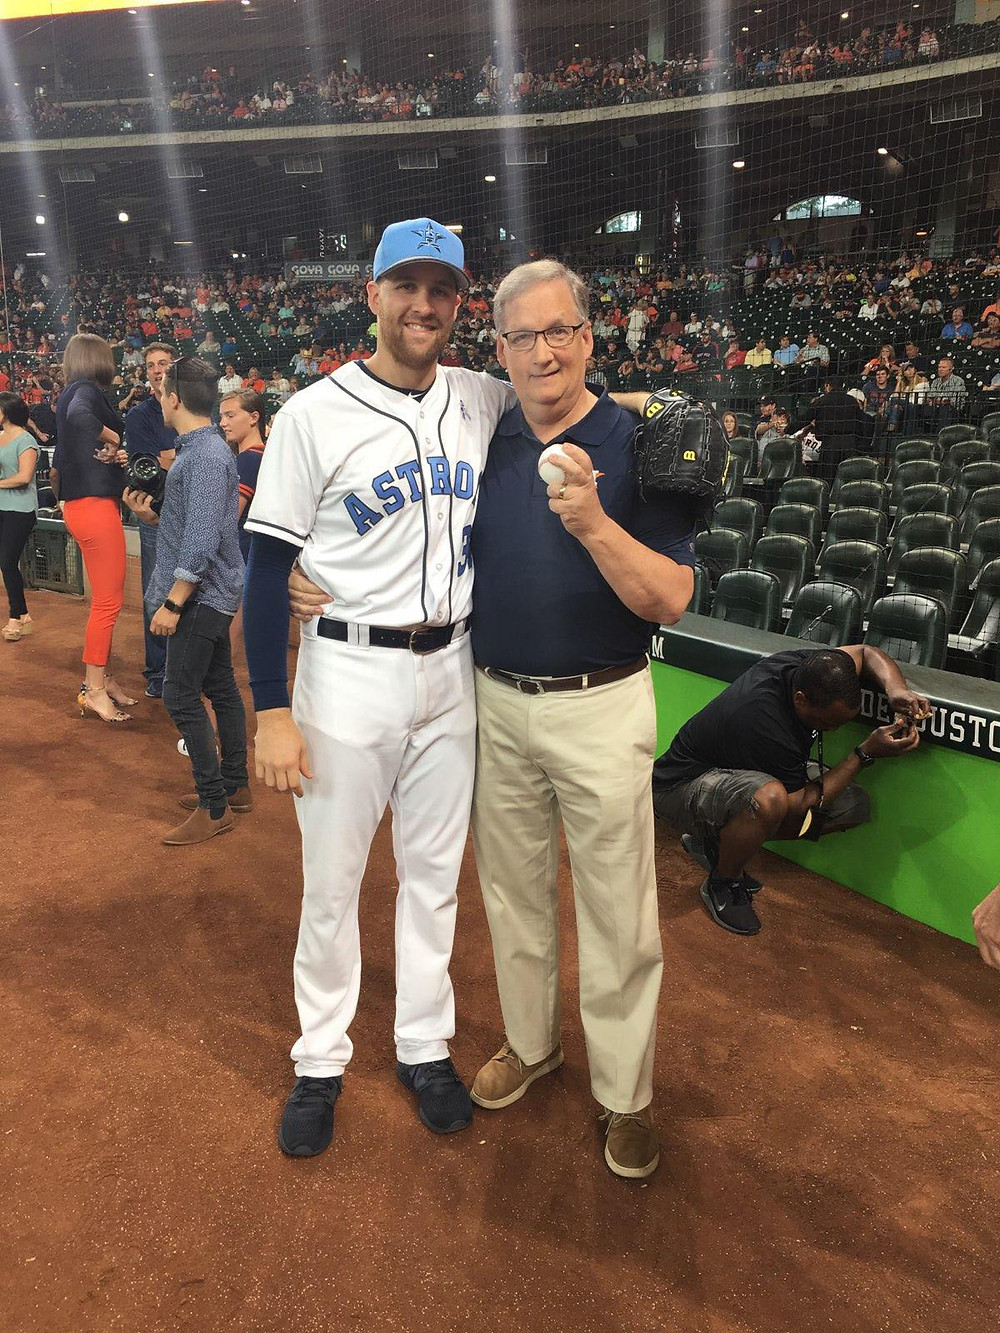 """Scott McHugh, father of Houston Astros pitcher Collin McHugh, says having his son in the World Series """"is still surreal to us."""" (Photo courtesy of Scott and Teresa McHugh)"""